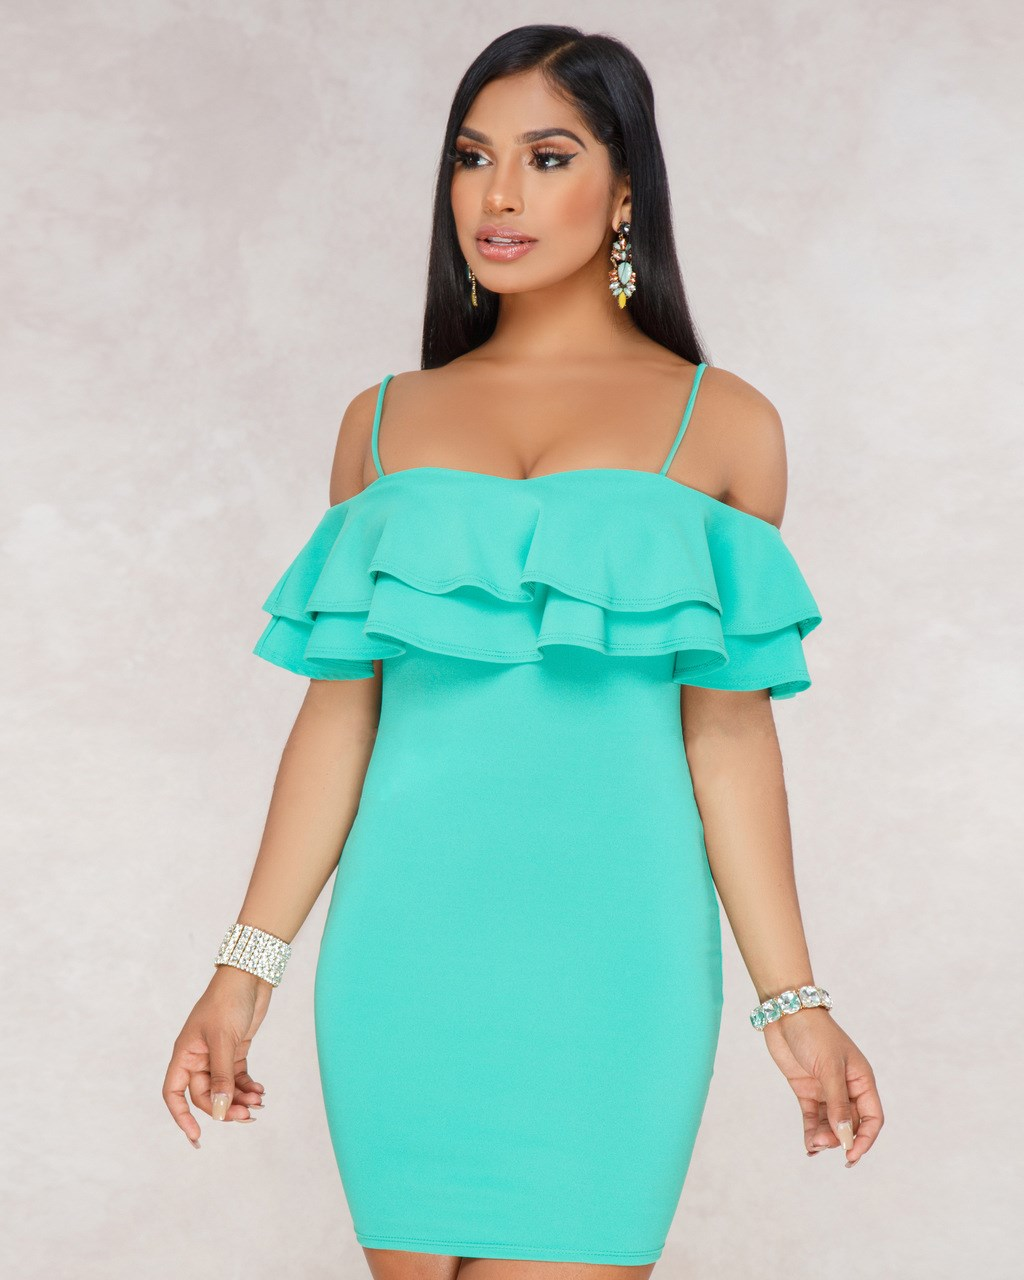 <font><b>2019</b></font> Summer <font><b>Sexy</b></font> Off Shoulder Ruffles <font><b>Dresses</b></font> Elegant Solid Color <font><b>Mini</b></font> <font><b>Dress</b></font> Celebrity Party <font><b>Runway</b></font> <font><b>Dresses</b></font> image